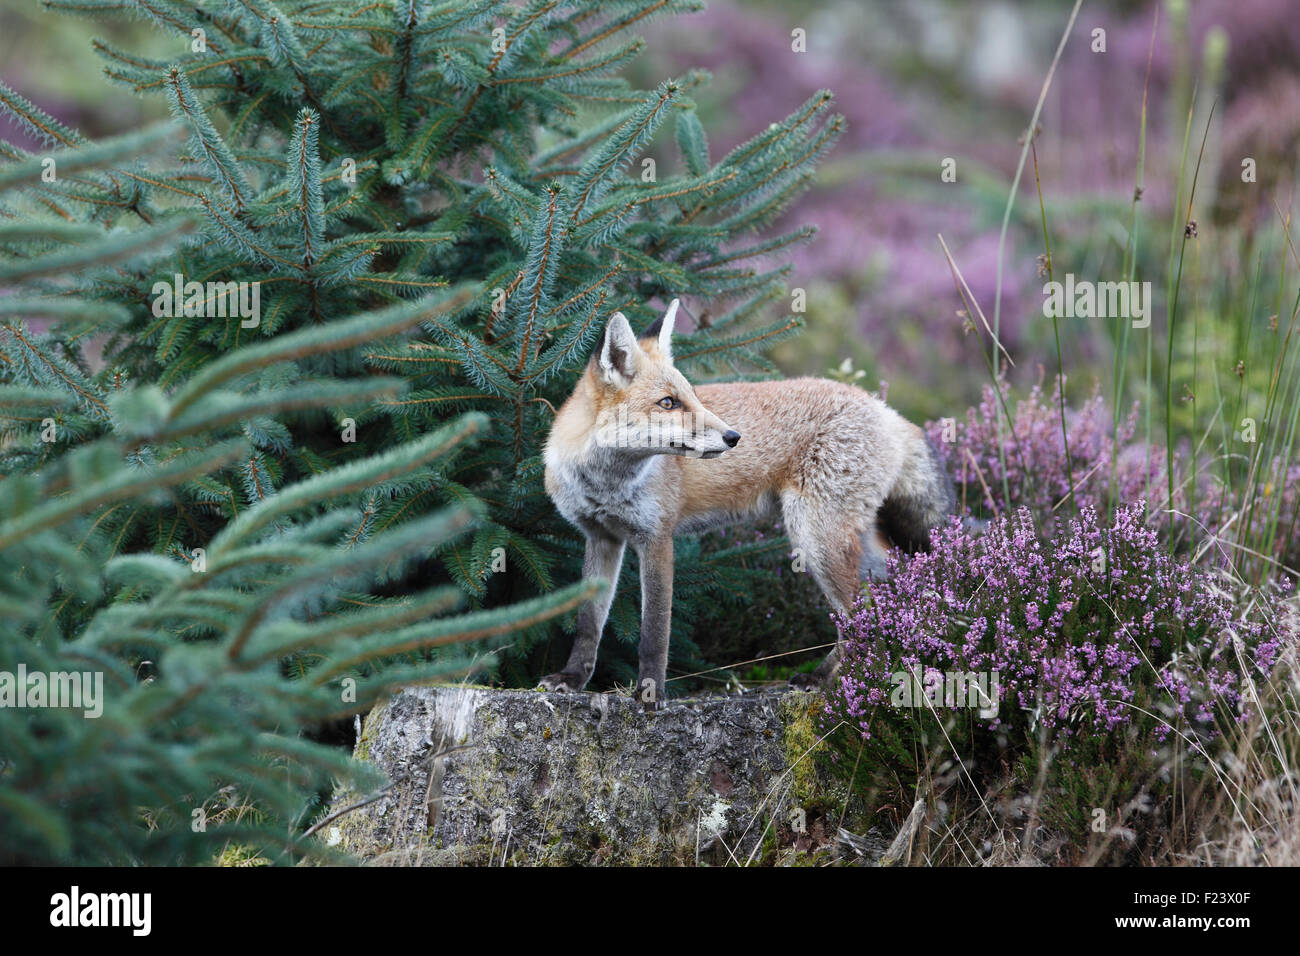 Vulpes vulpes Red fox standing on tree stump in forestry - Stock Image